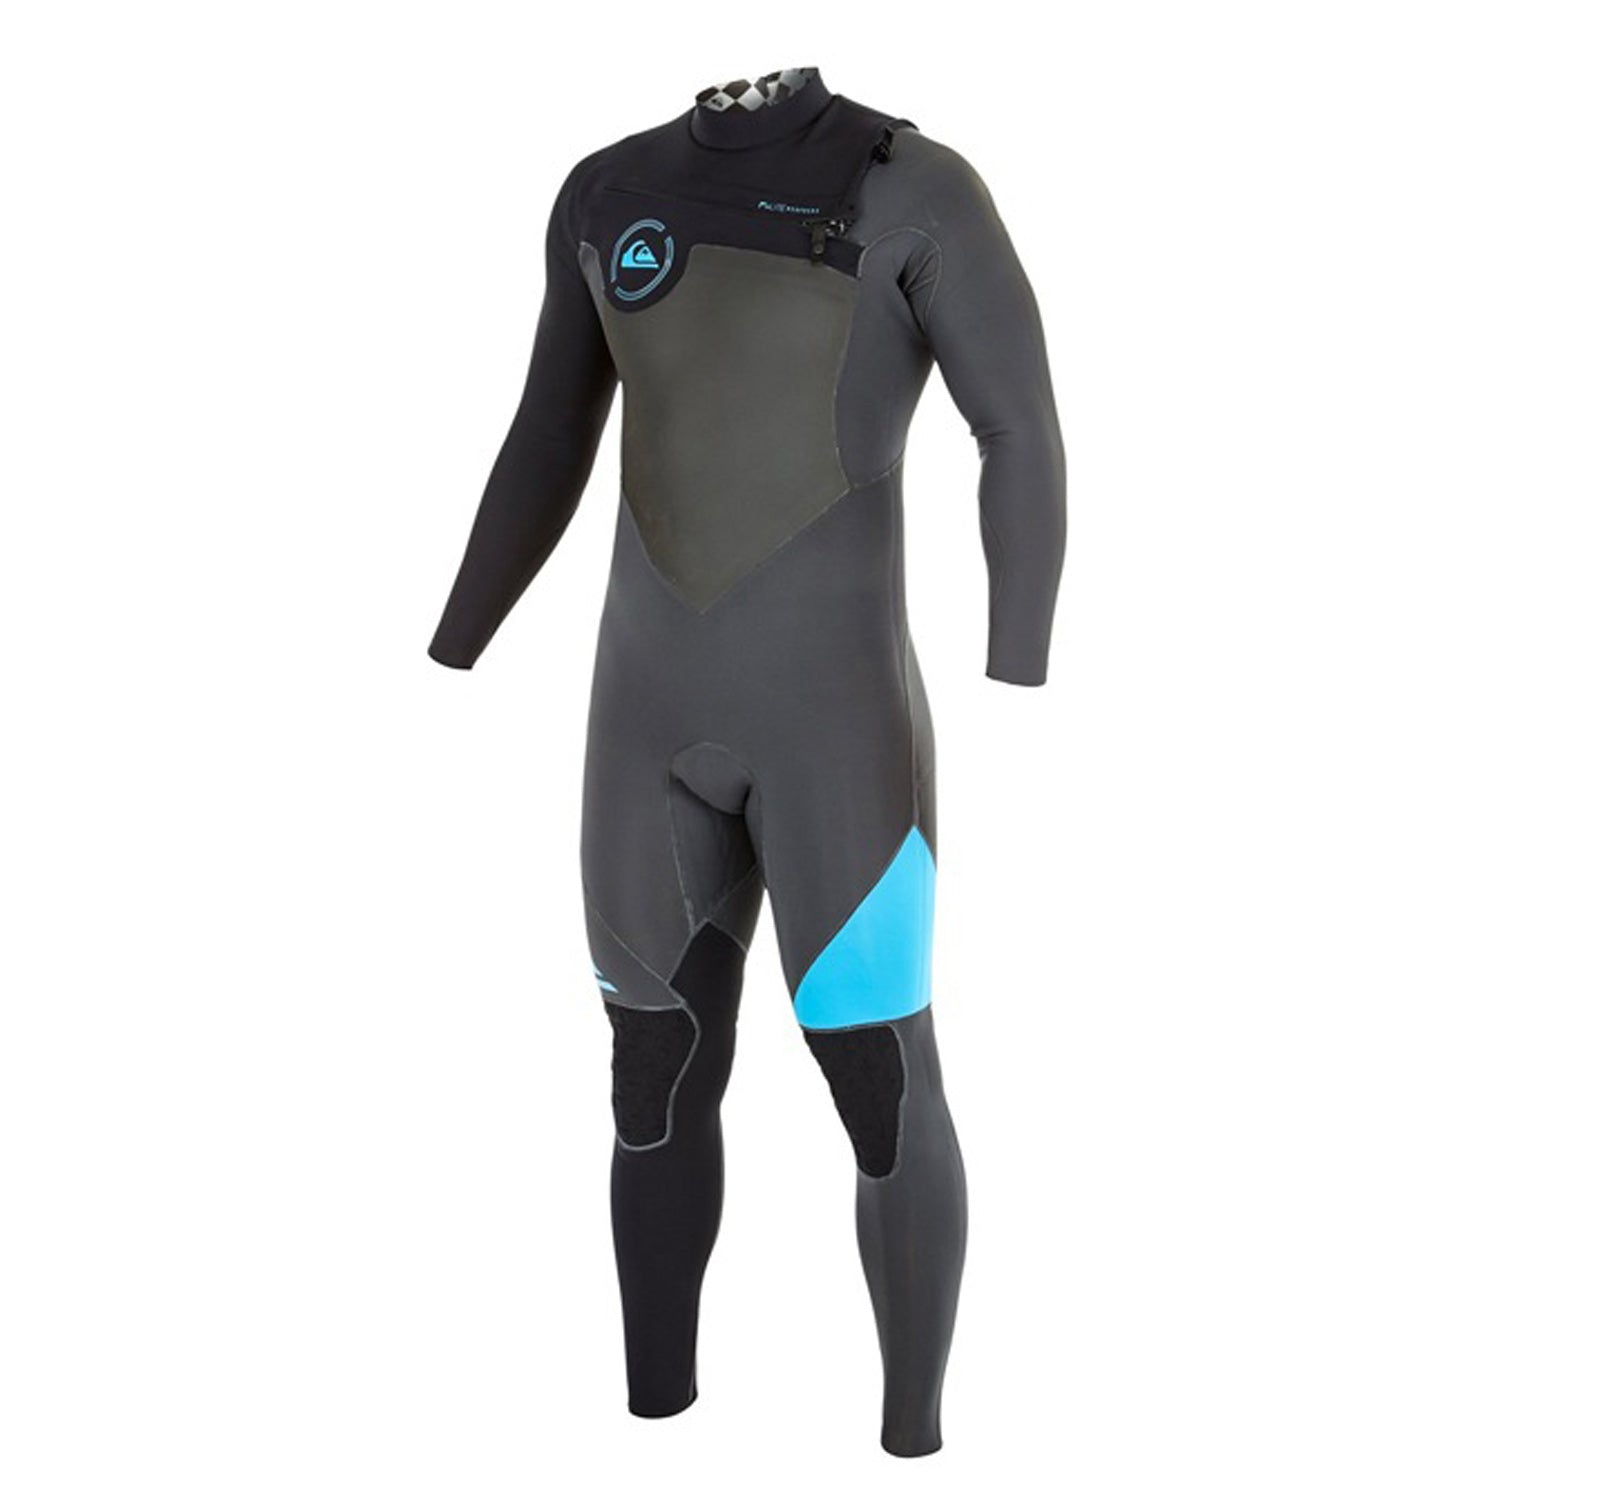 Quiksilver AG47 Performance Chest Zip 3/2 mm Men's Fullsuit